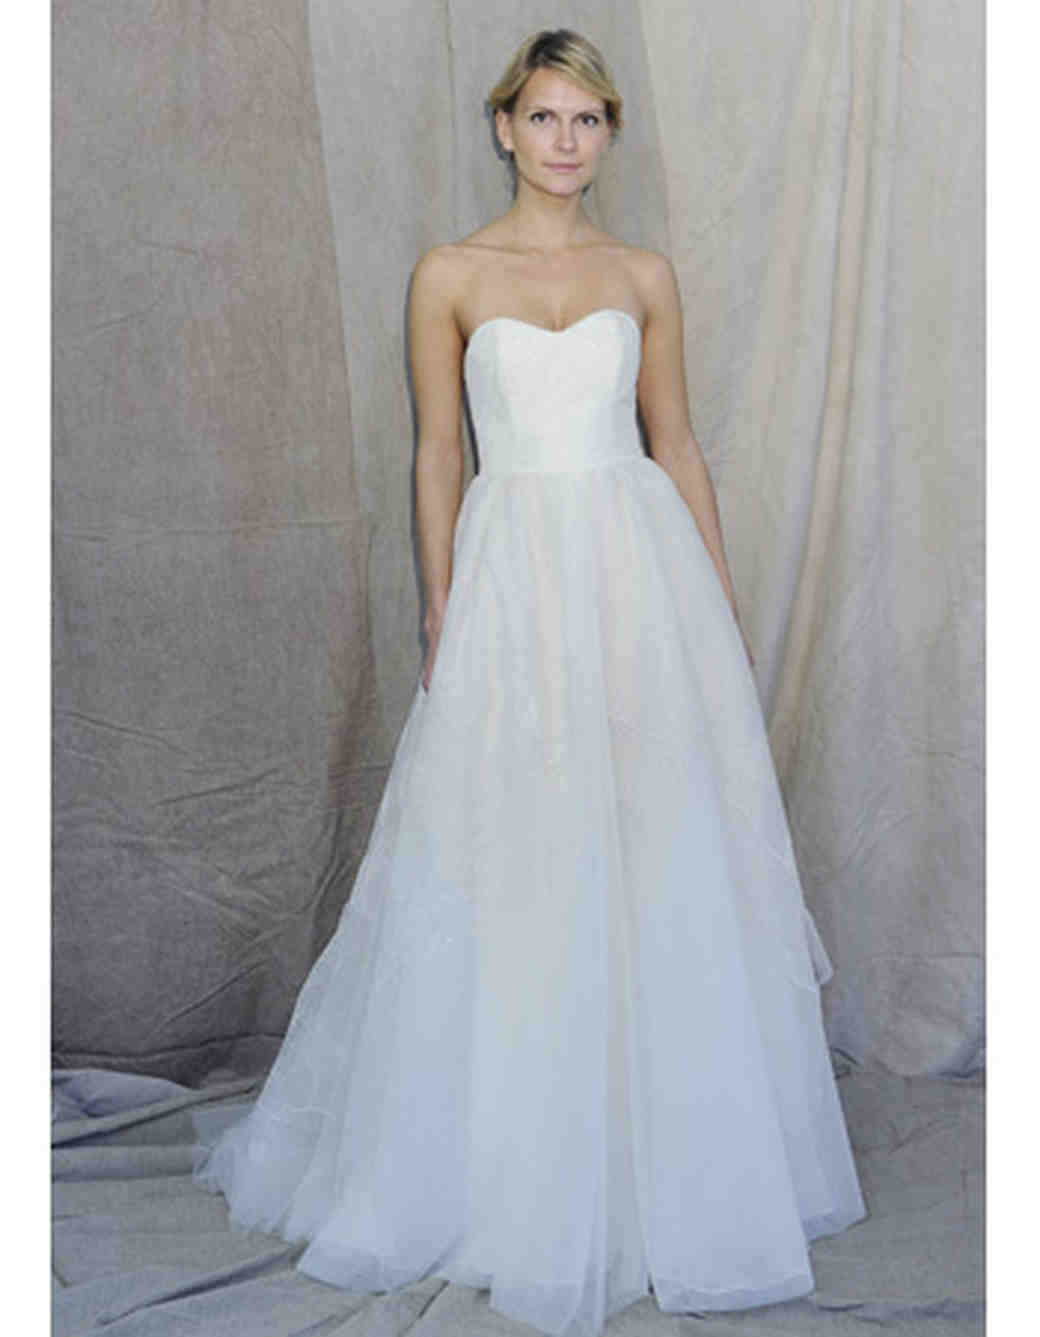 Lela Rose, Spring 2012 Collection | Martha Stewart Weddings